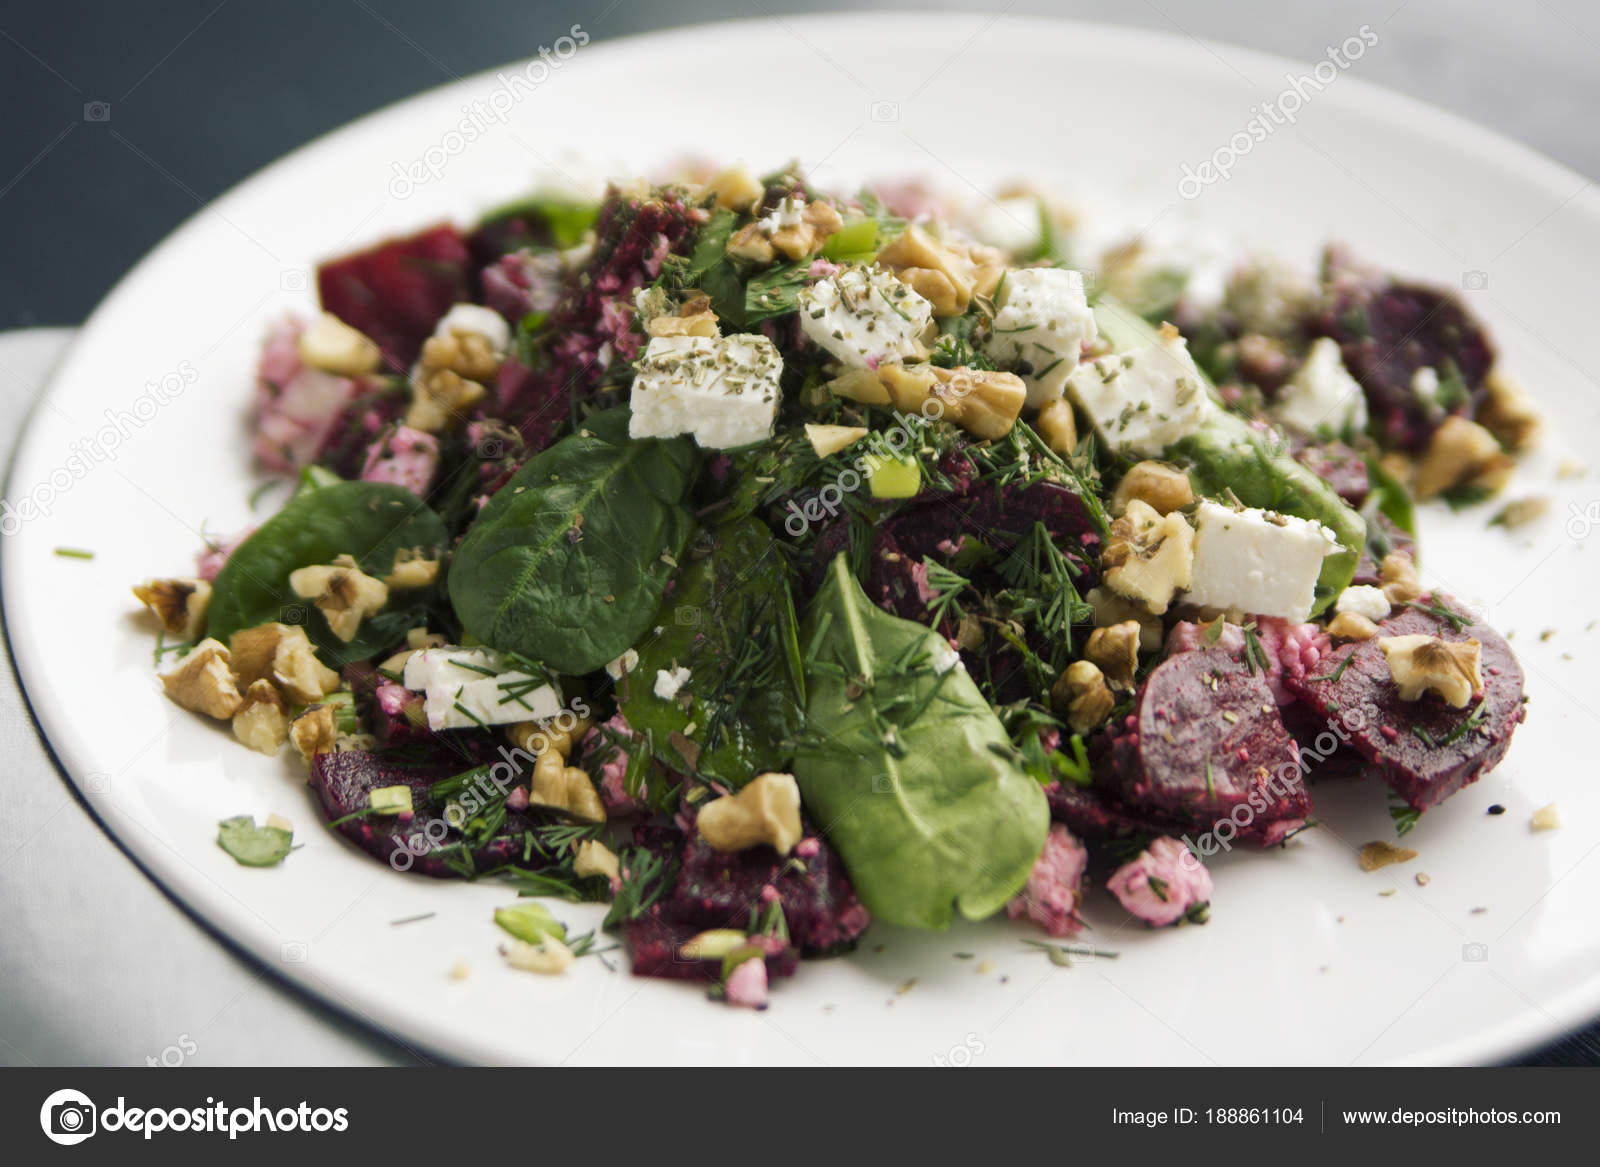 Beetroot Salad With Cottage Cheese, Baby Spinach And Walnuts. European  Cuisine. Organic Food